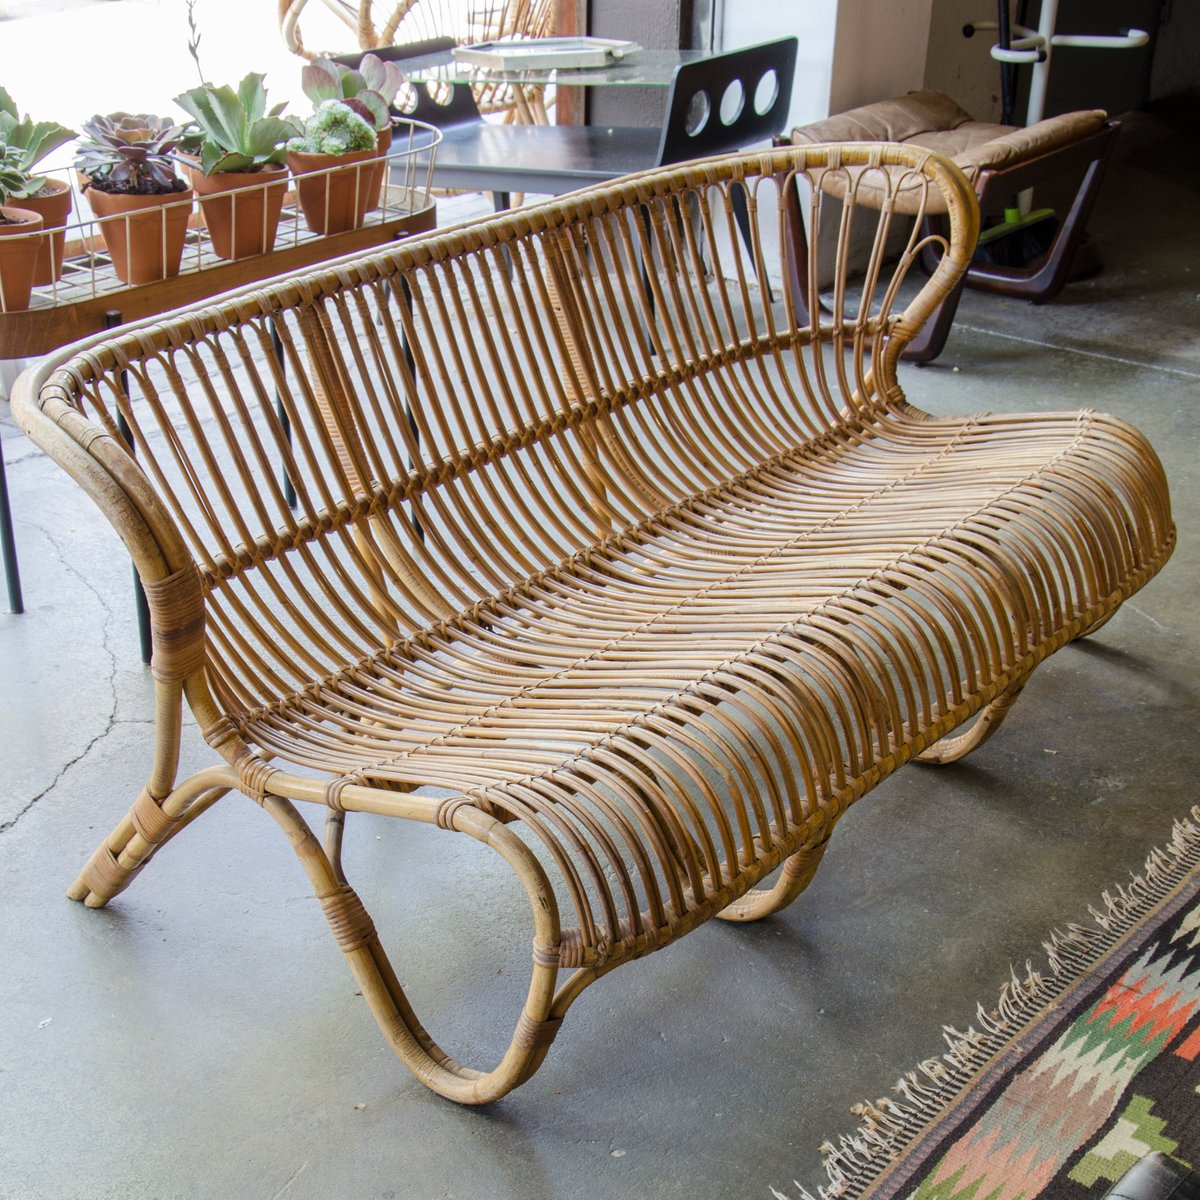 Uncategorized Bamboo Couch vintage bamboo and cane sofa by viggo boesen fox for e v a nissen co 1950s sale at pamono